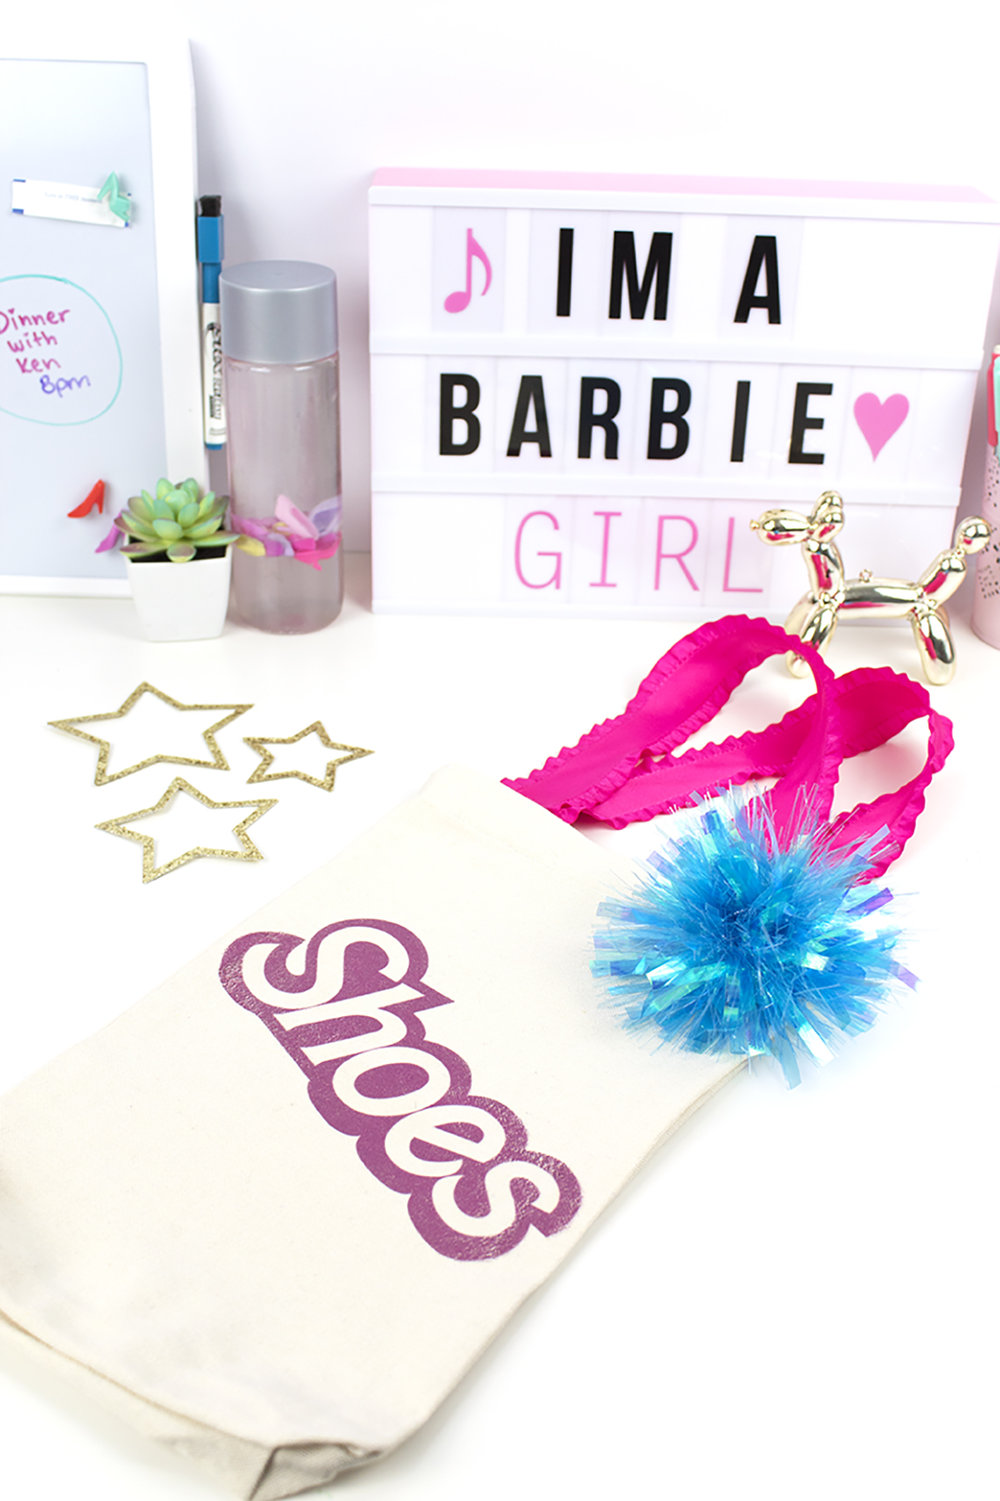 As a Barbie collector, fan, and self-titled Barbie Girl, I could not WAIT to create a Barbie Doll themed DIY. This tote bag features a pink Barbie shoes iron-on. Click for the DIY and free printable! #barbiedoll #totebag #barbieclothes